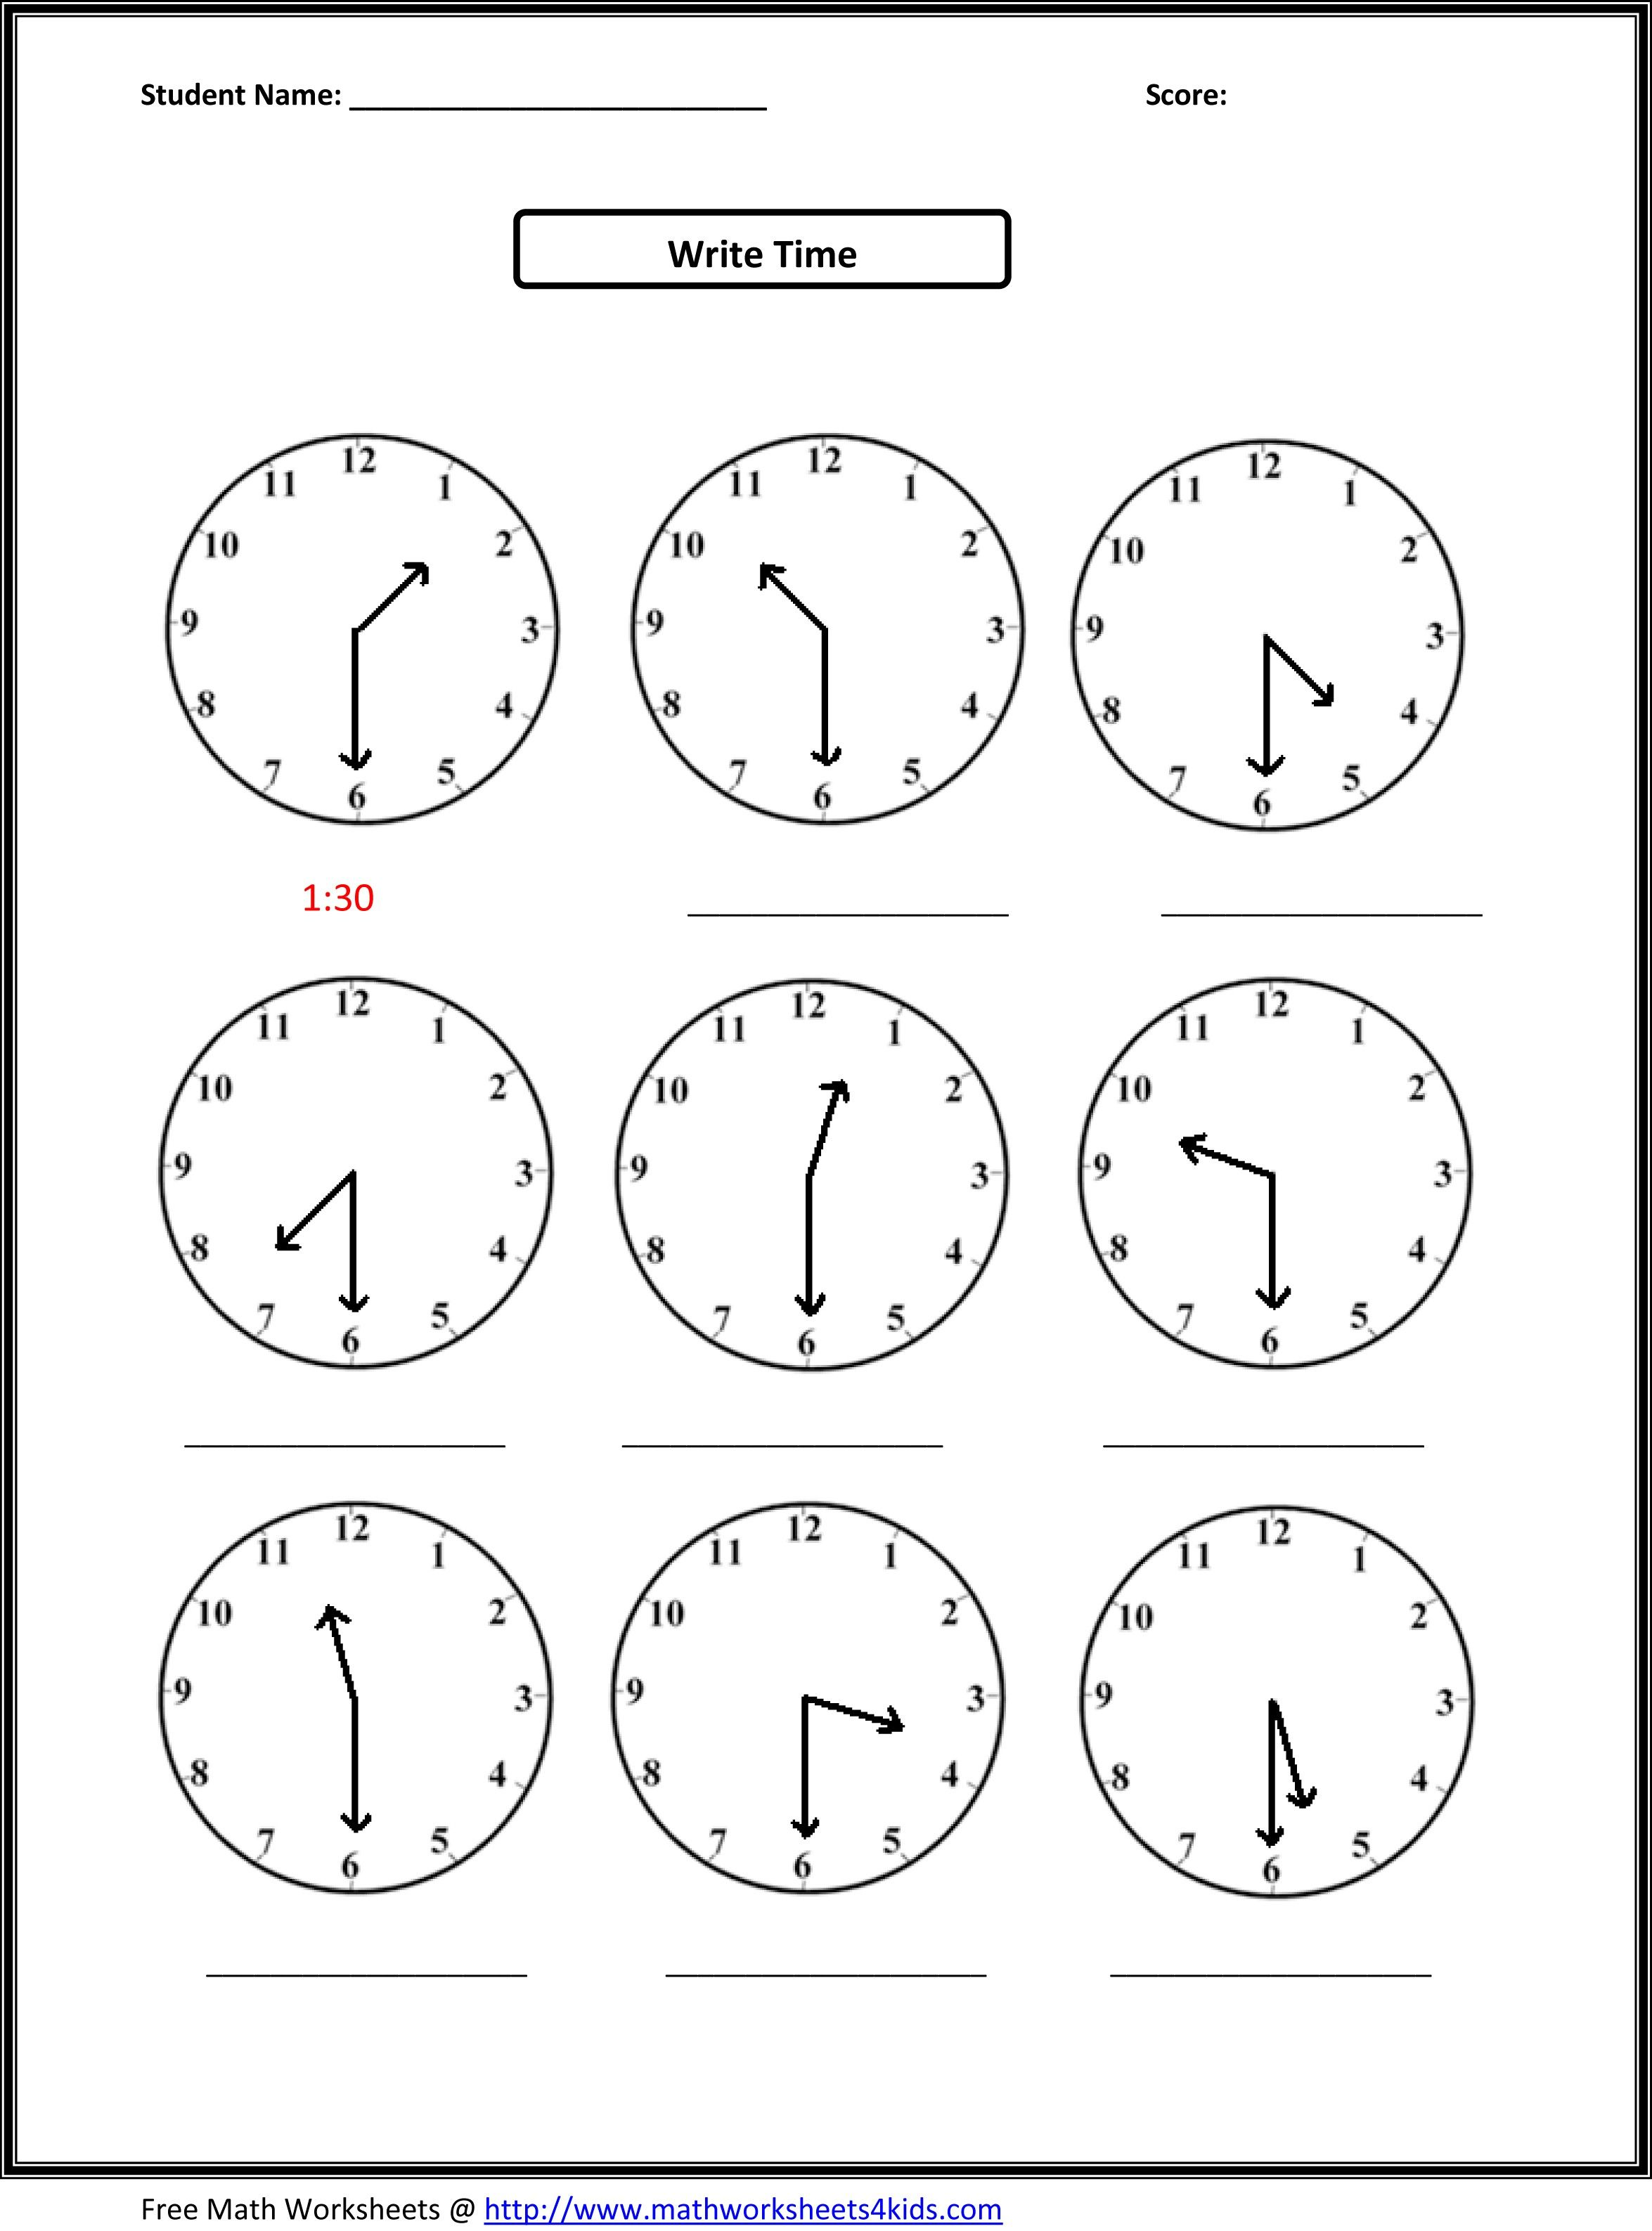 2nd Grade Free Worksheets Math | Math: Time/Measurement | Pinterest ...